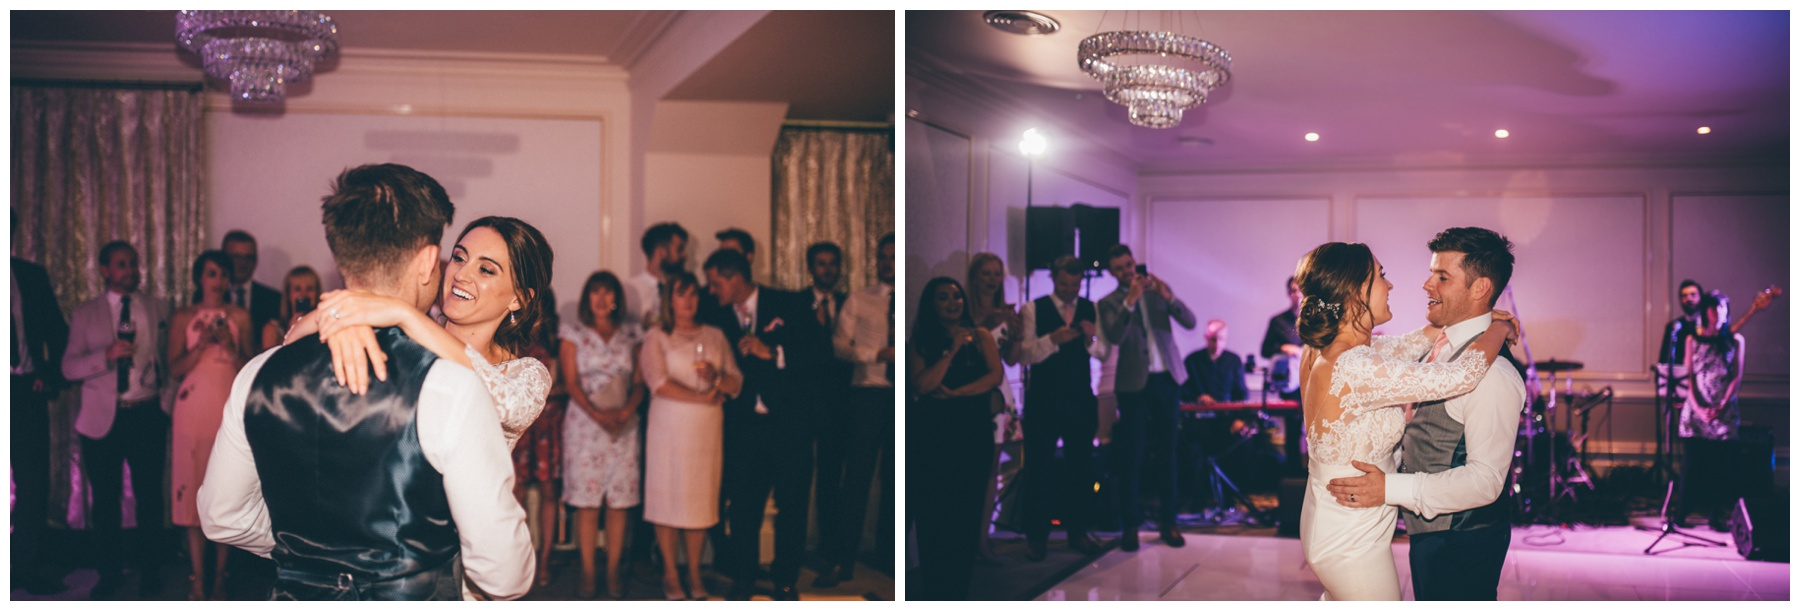 Bride and Groom do their First Dance at Tilstone House in Cheshire.